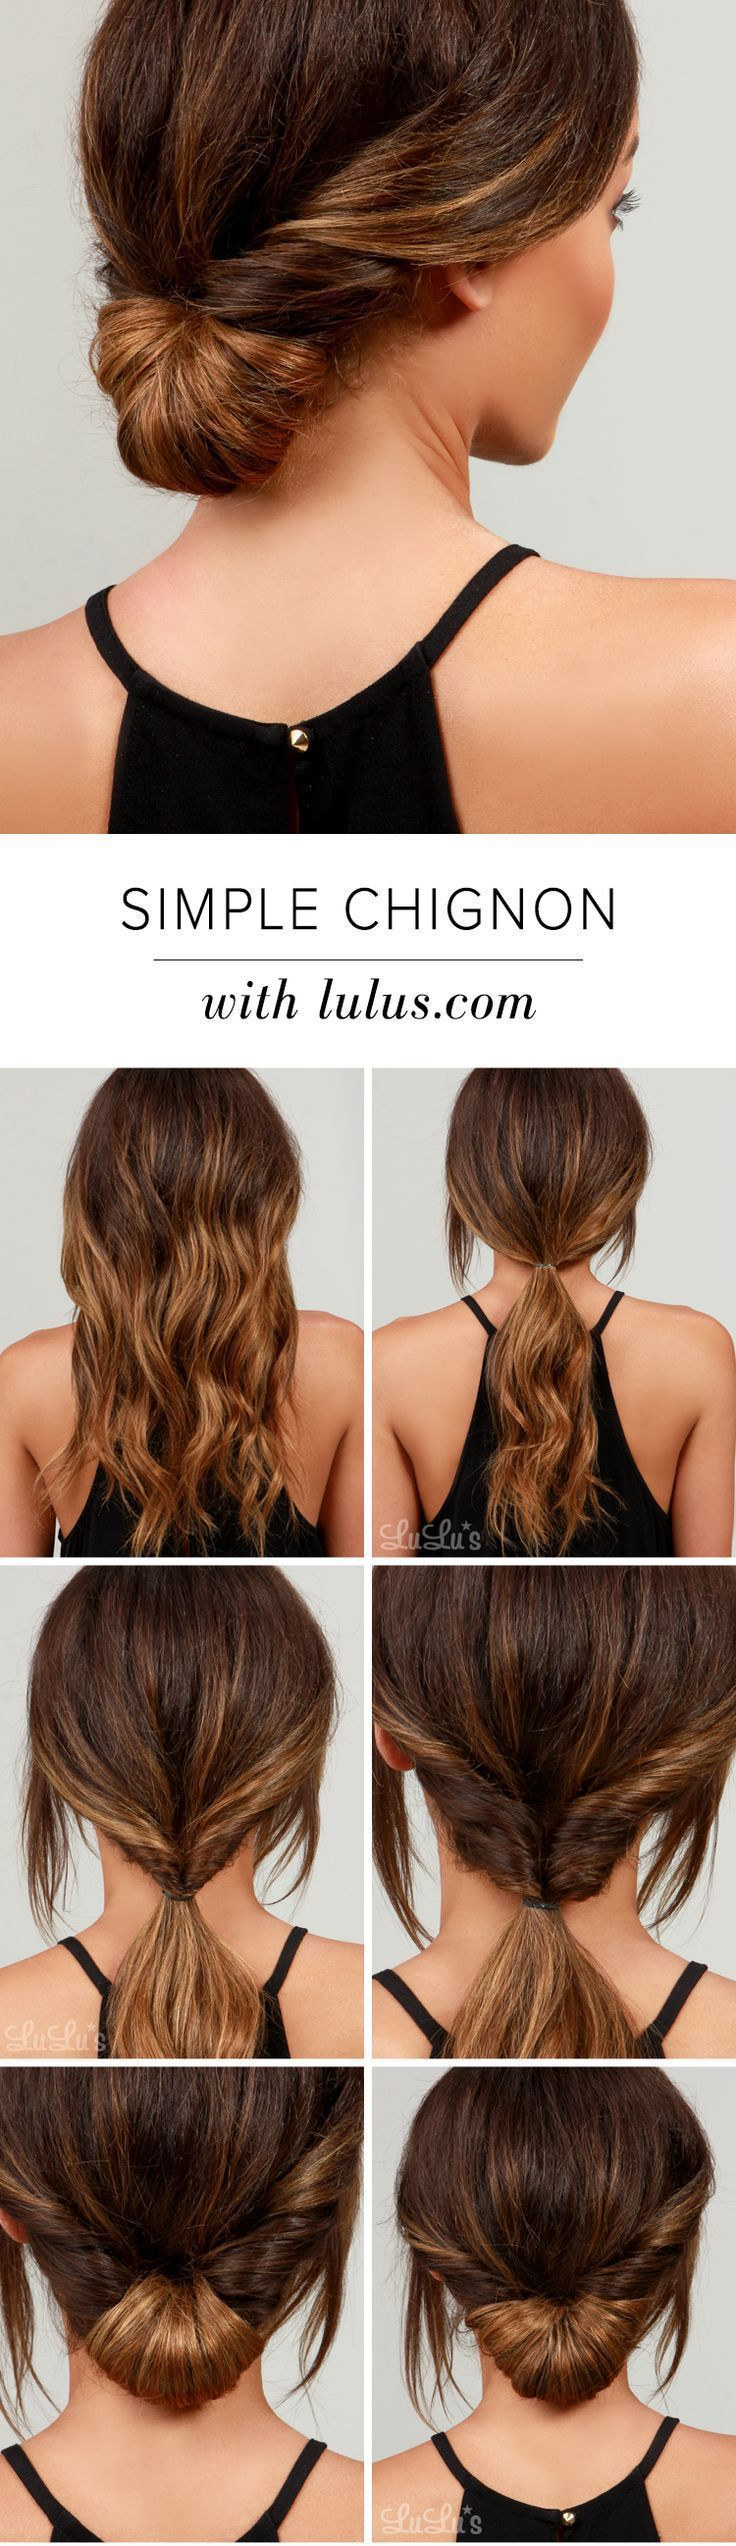 LuLus HowTo Simple Chignon Hair Tutorial Step by step tutorial